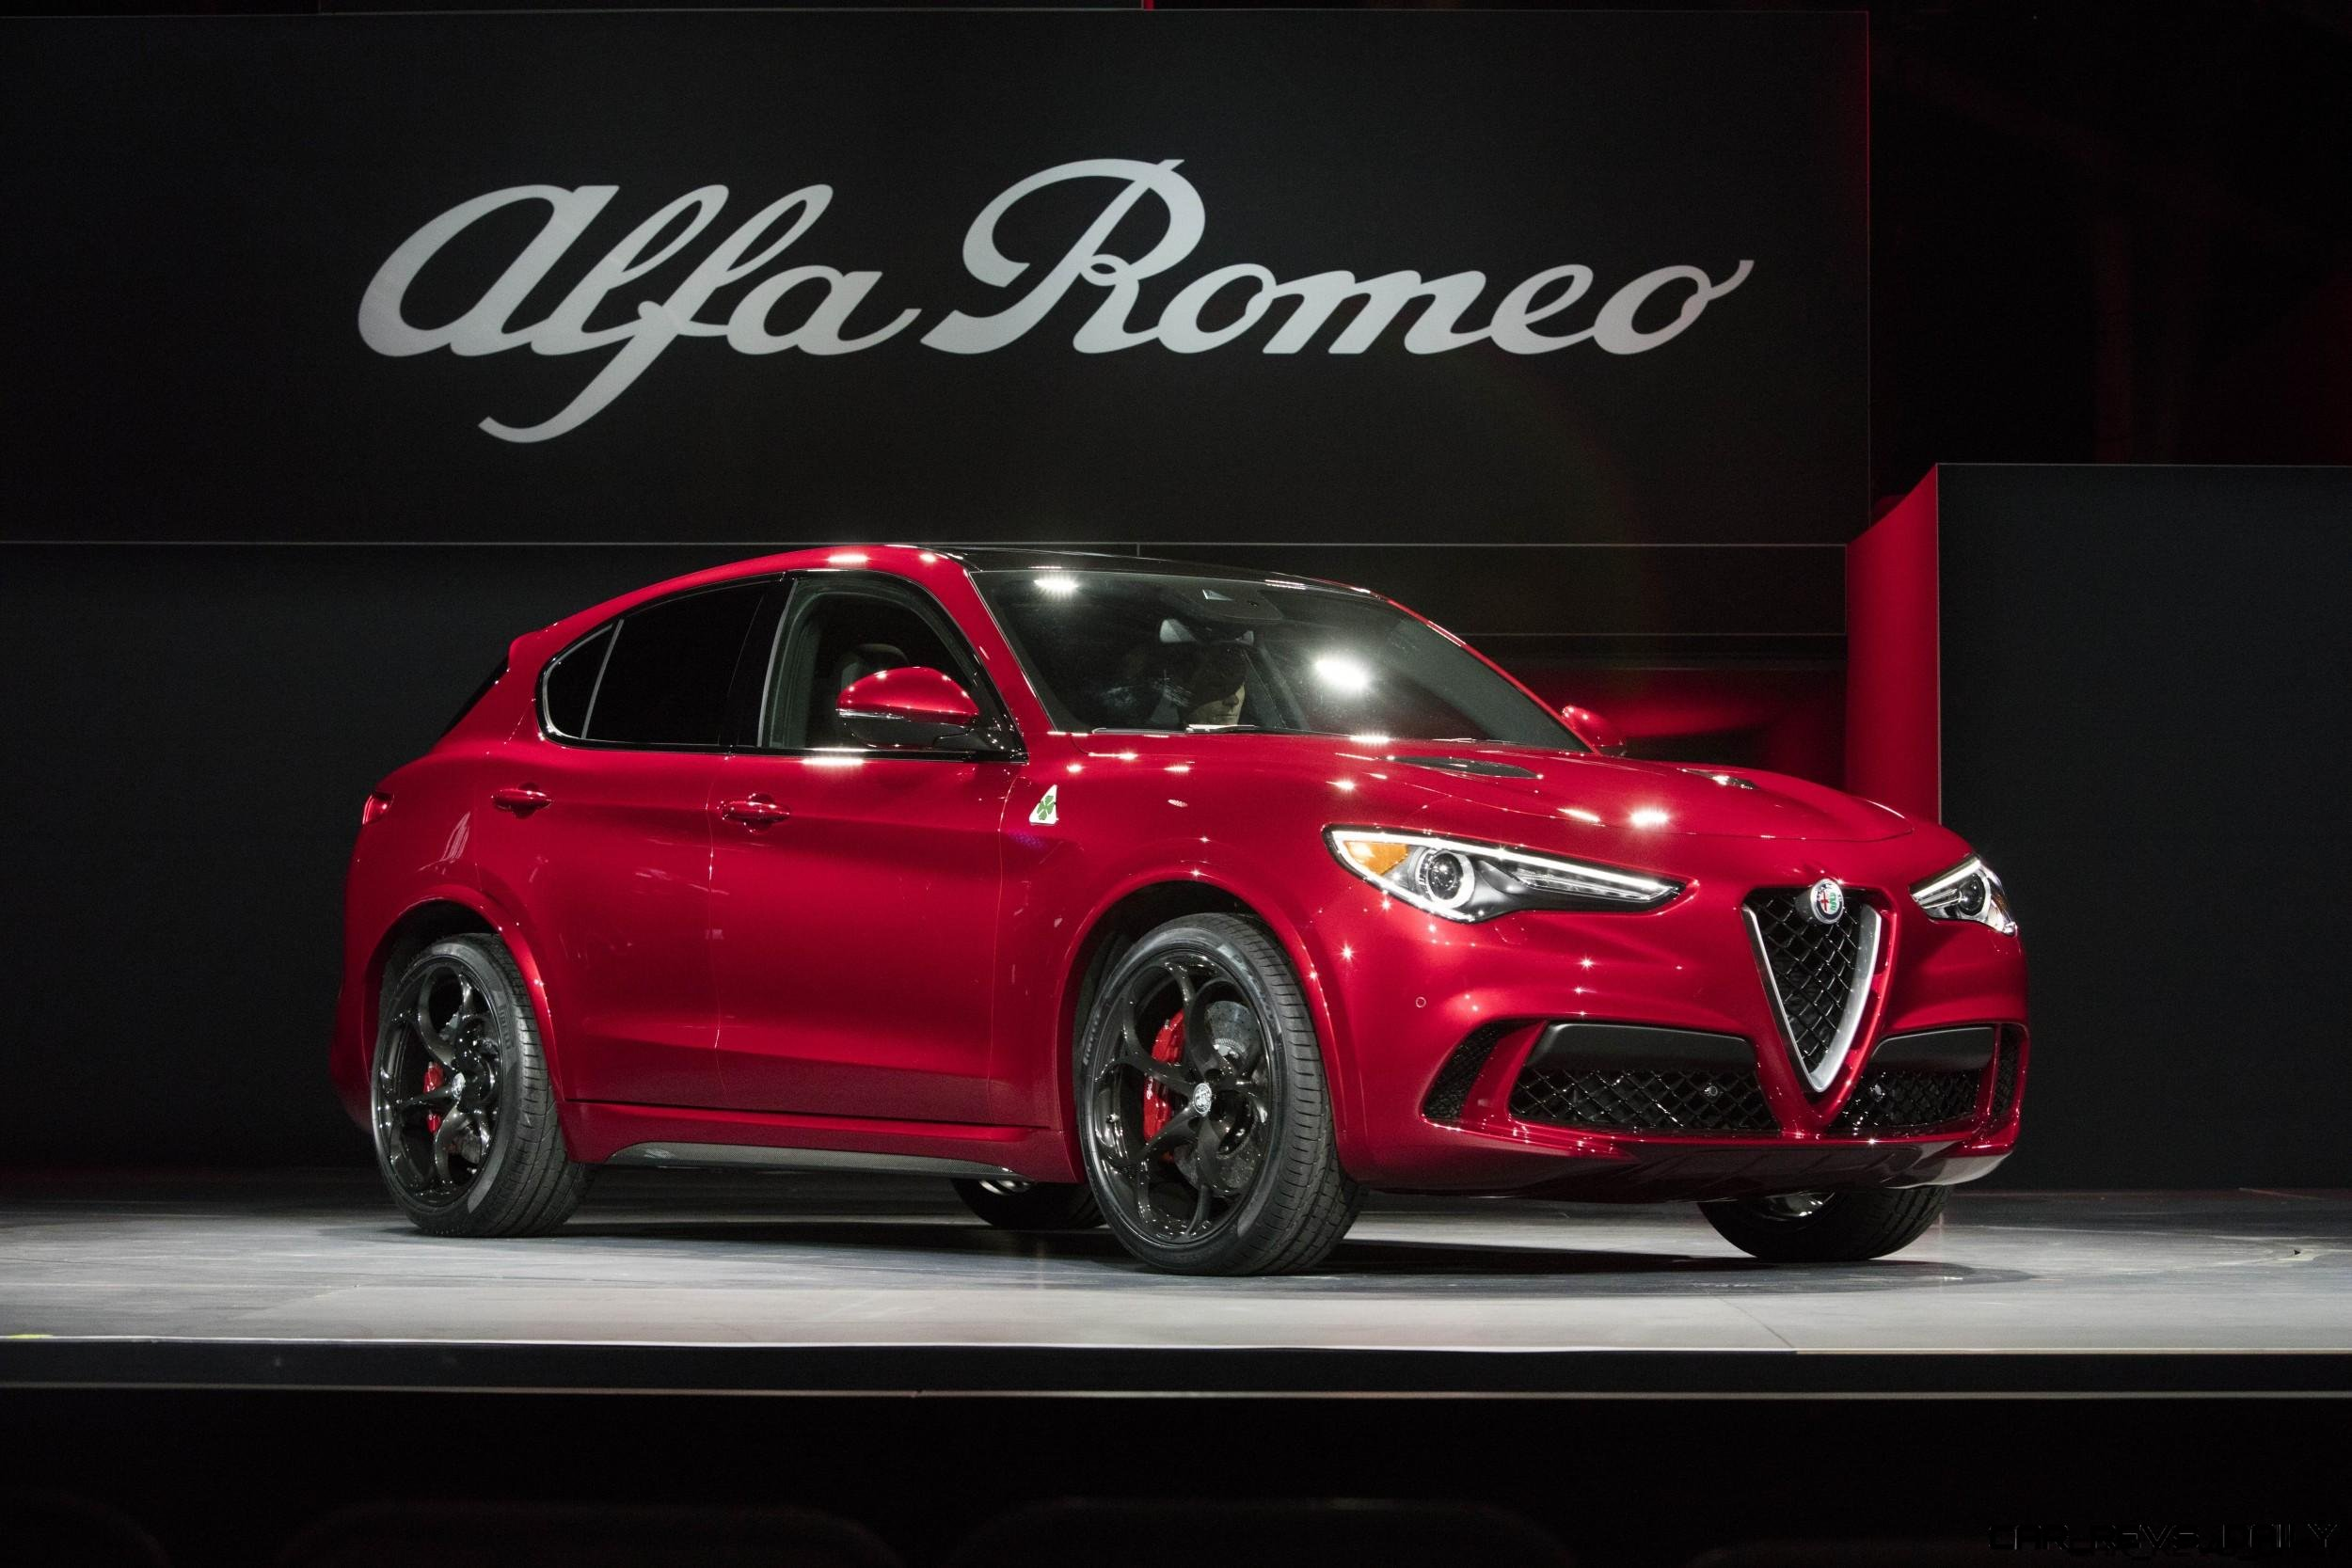 505hp 3 9s 2018 Alfa Romeo Stelvio High Performance Suv Wows La World